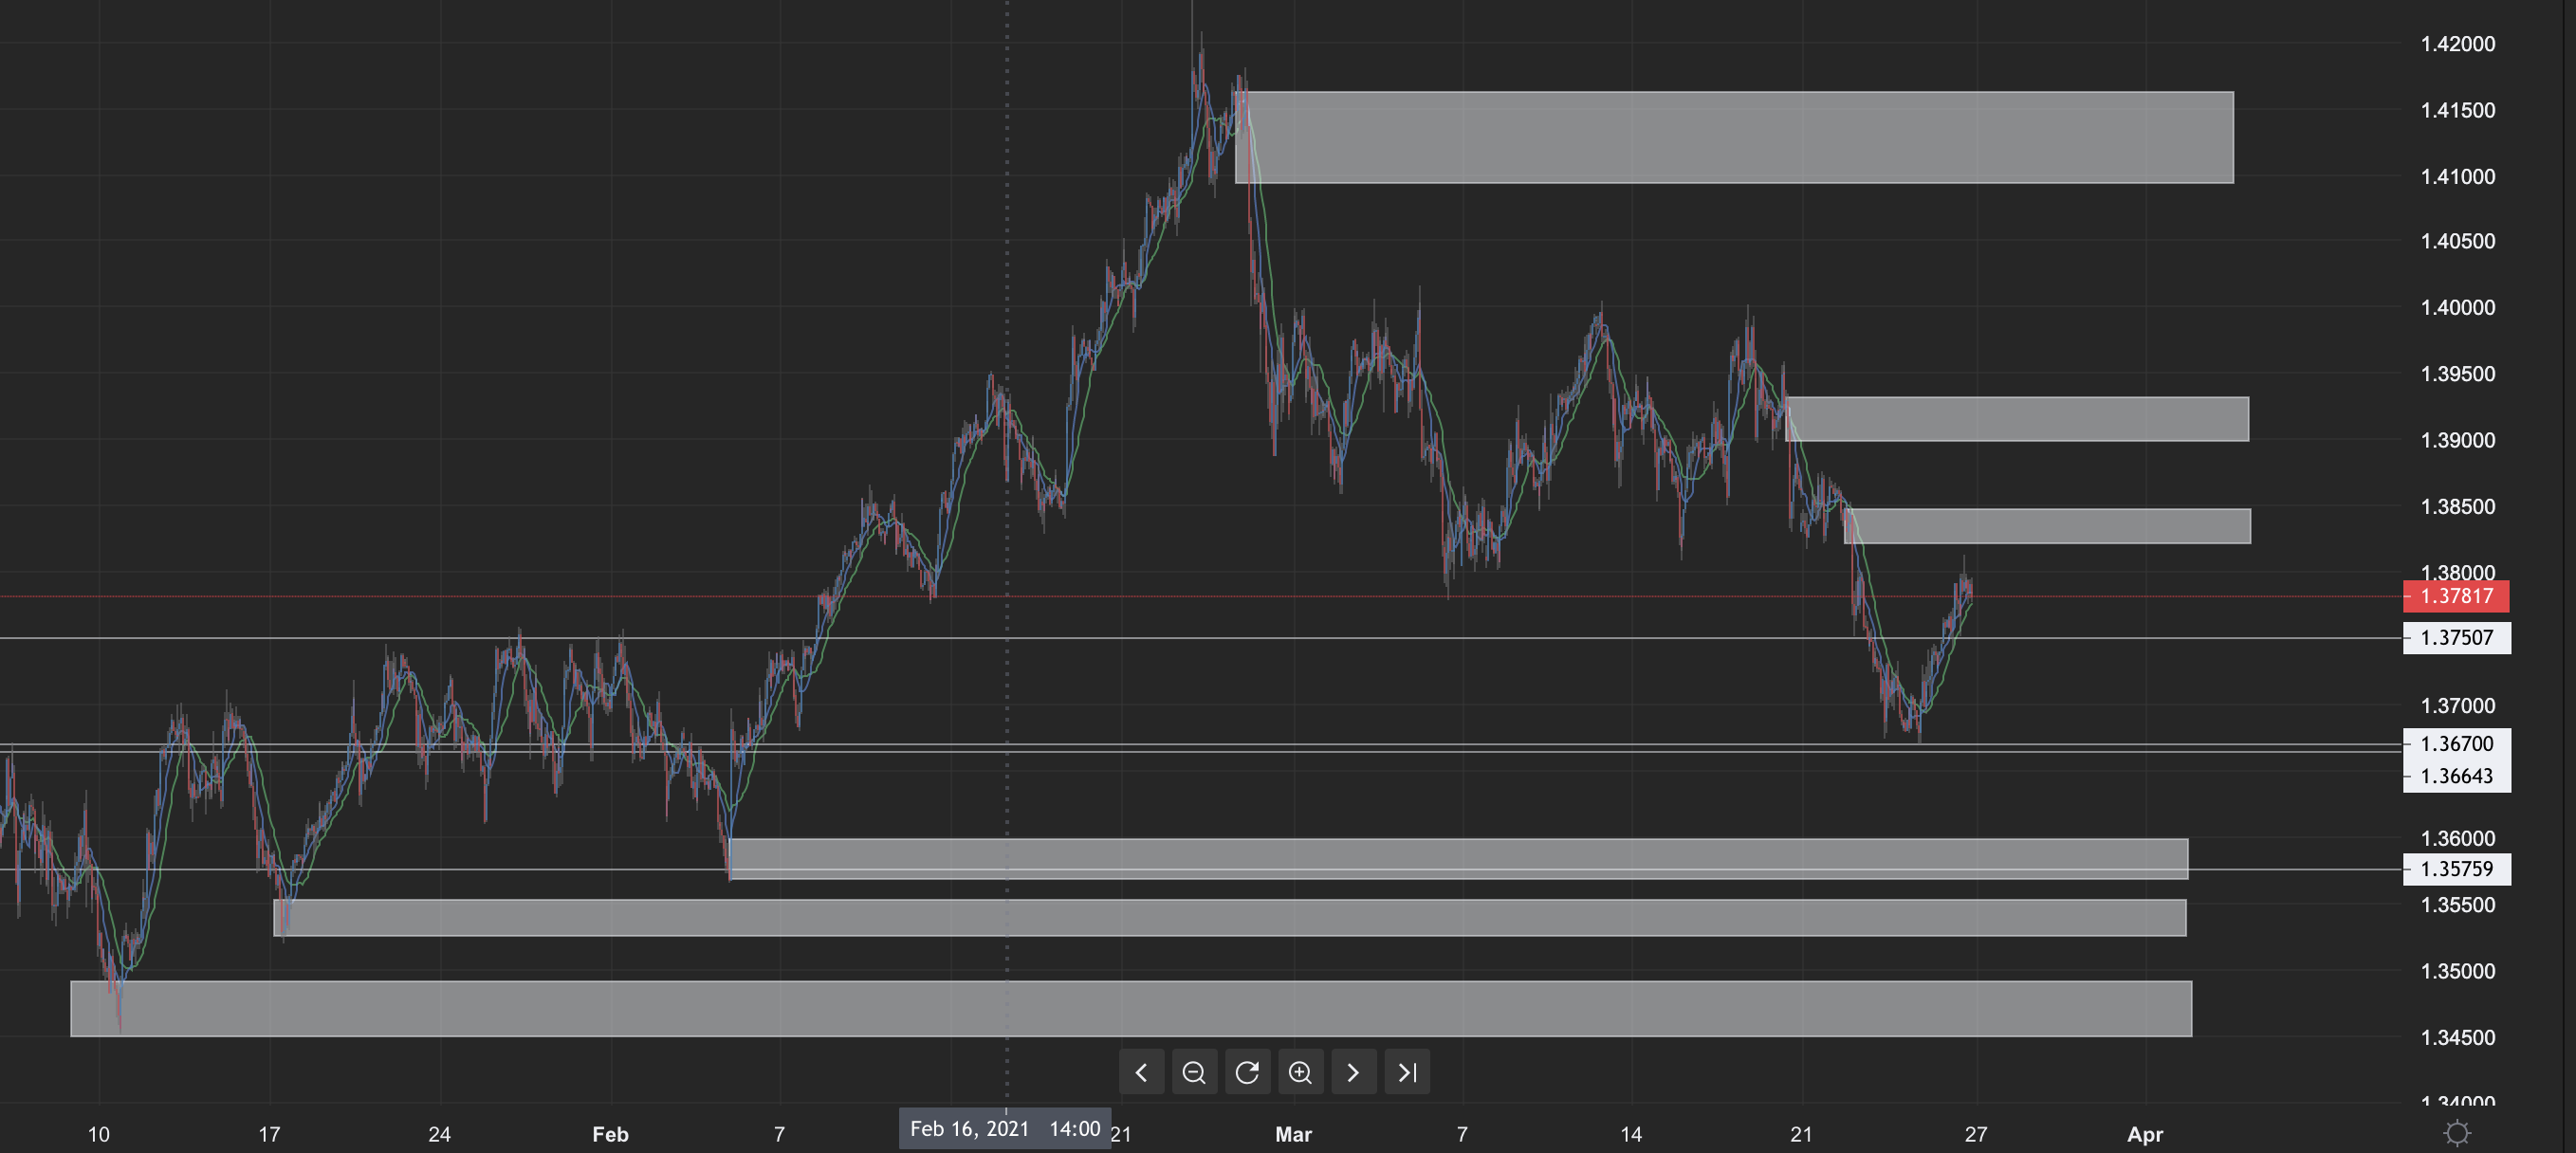 GBP/USD H1 Supply and Demand